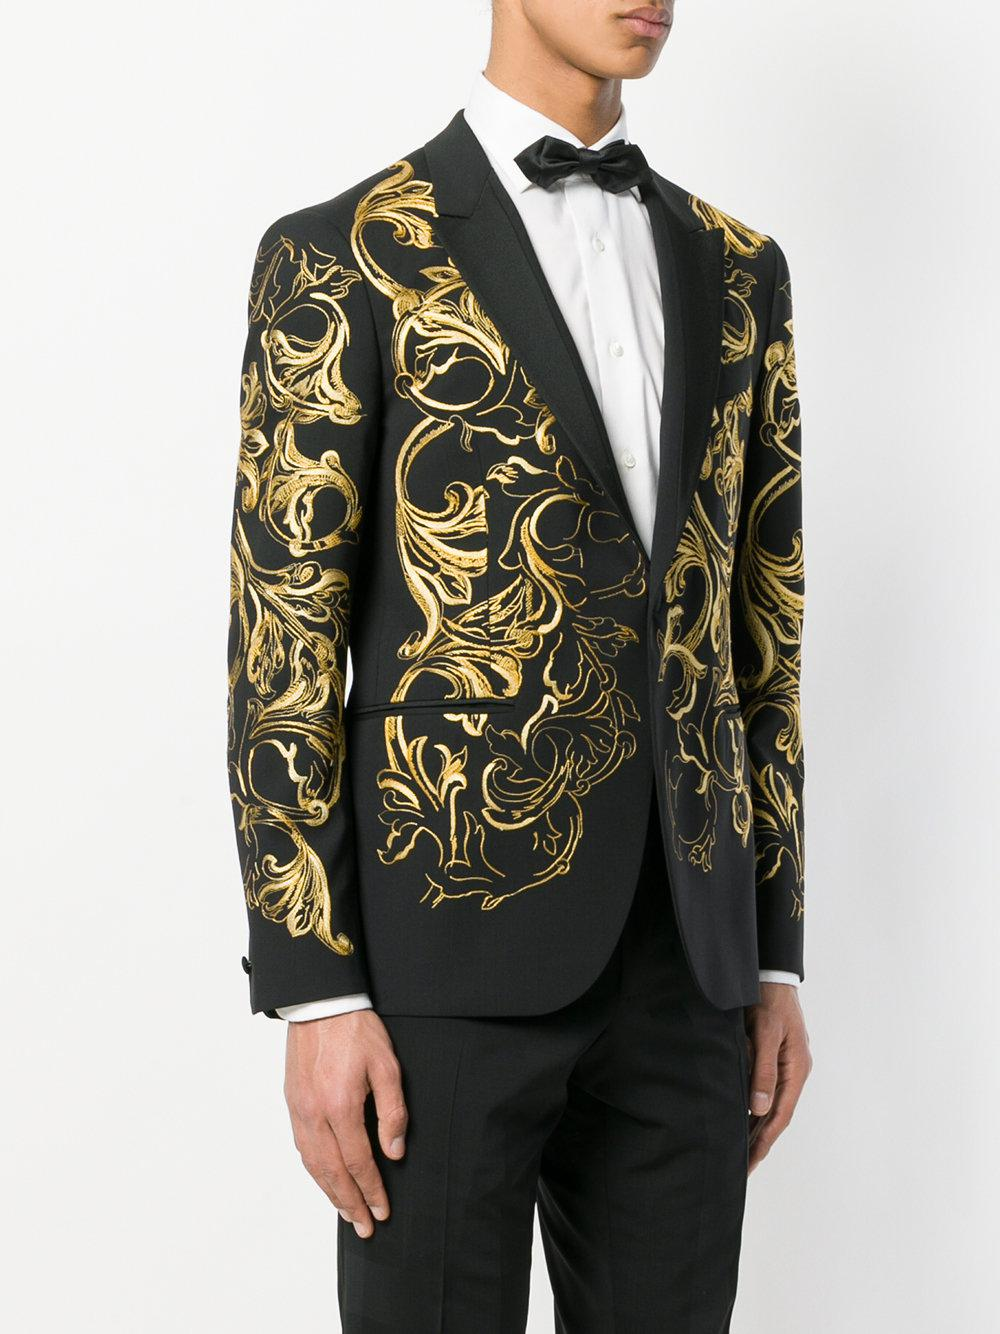 Black And Gold Suit : black, Versace, Black, Google, Search